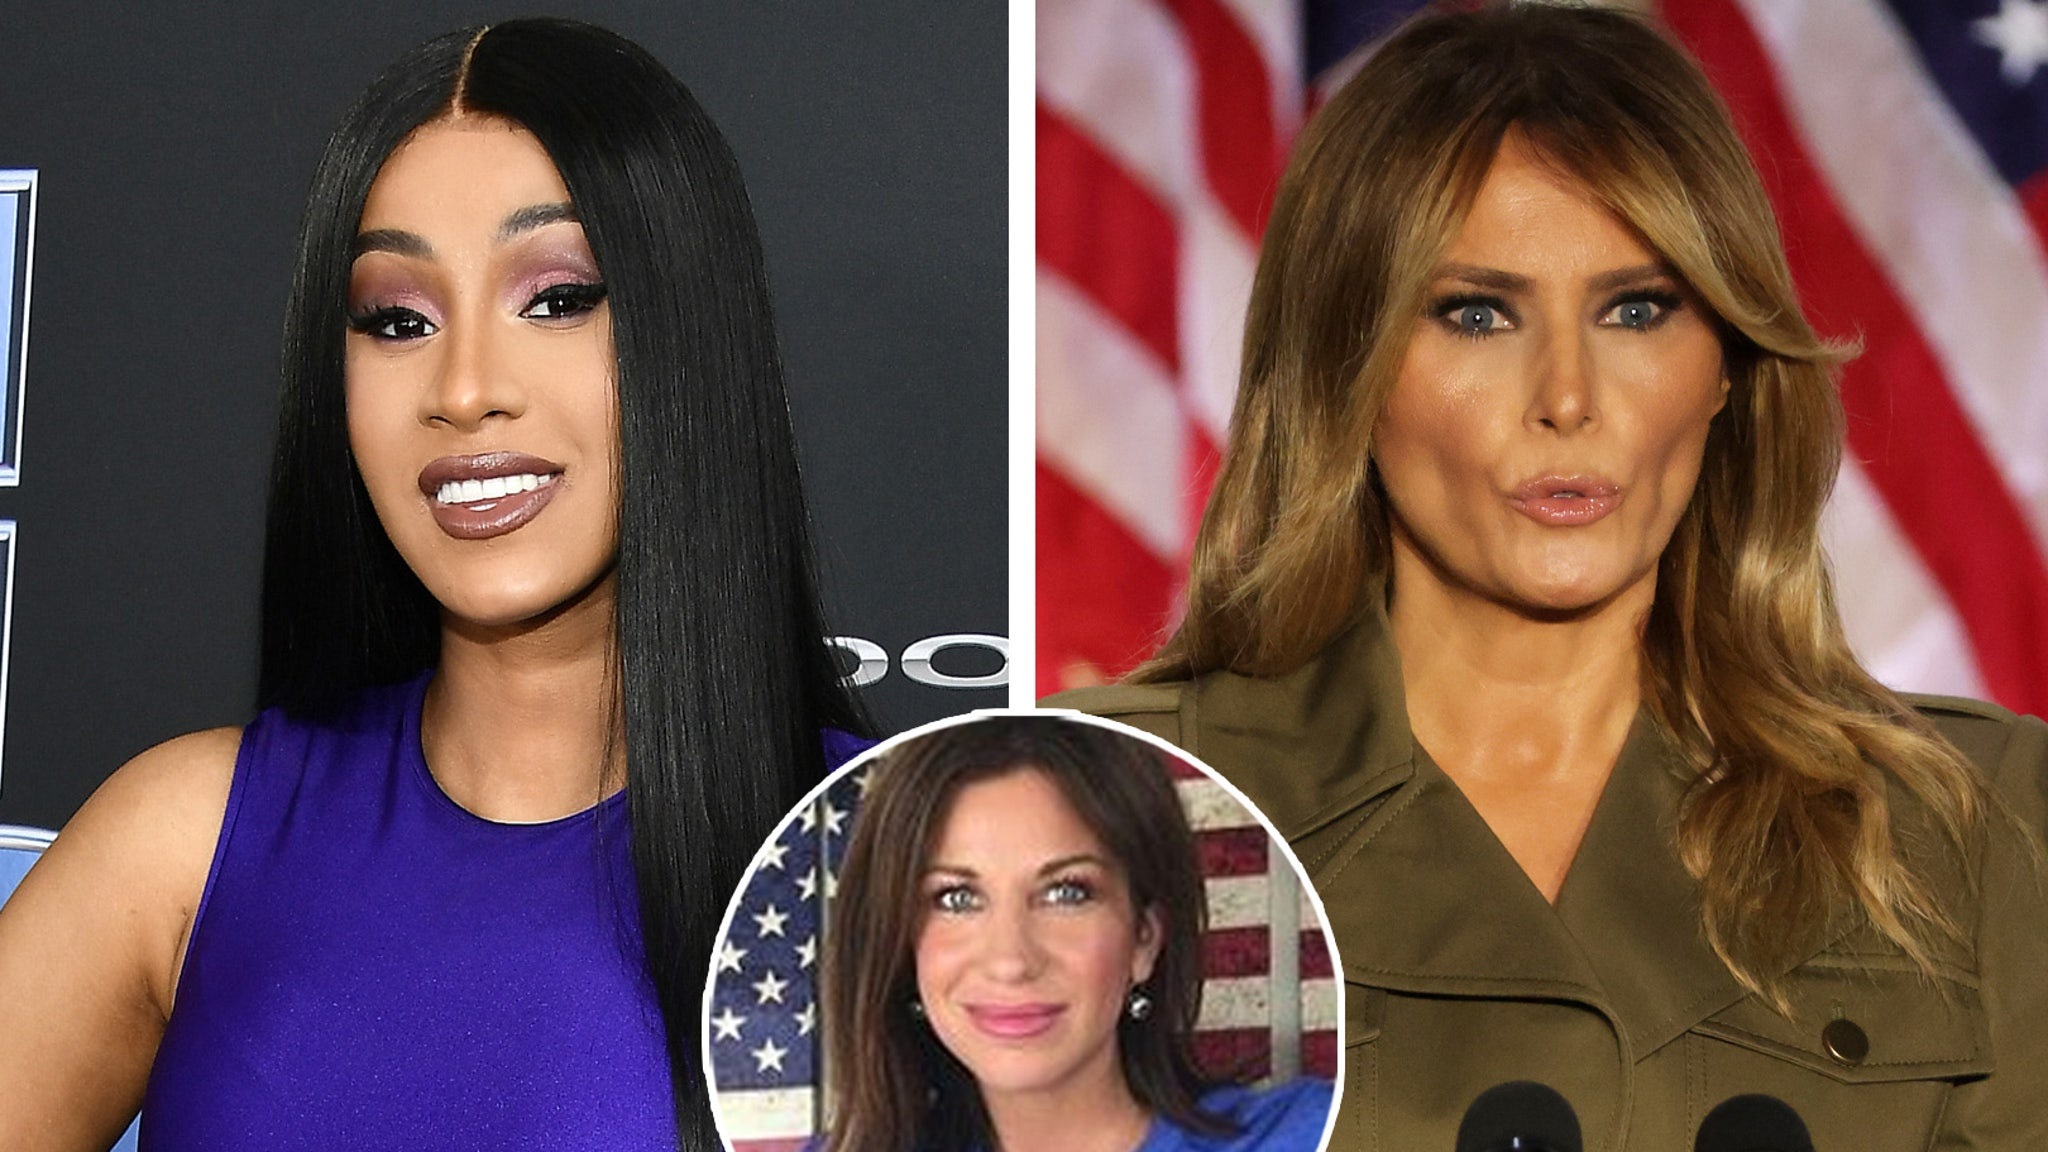 Cardi B Tweets About Melania Trump's WAP In Clapback to Republican Critic - TooFab